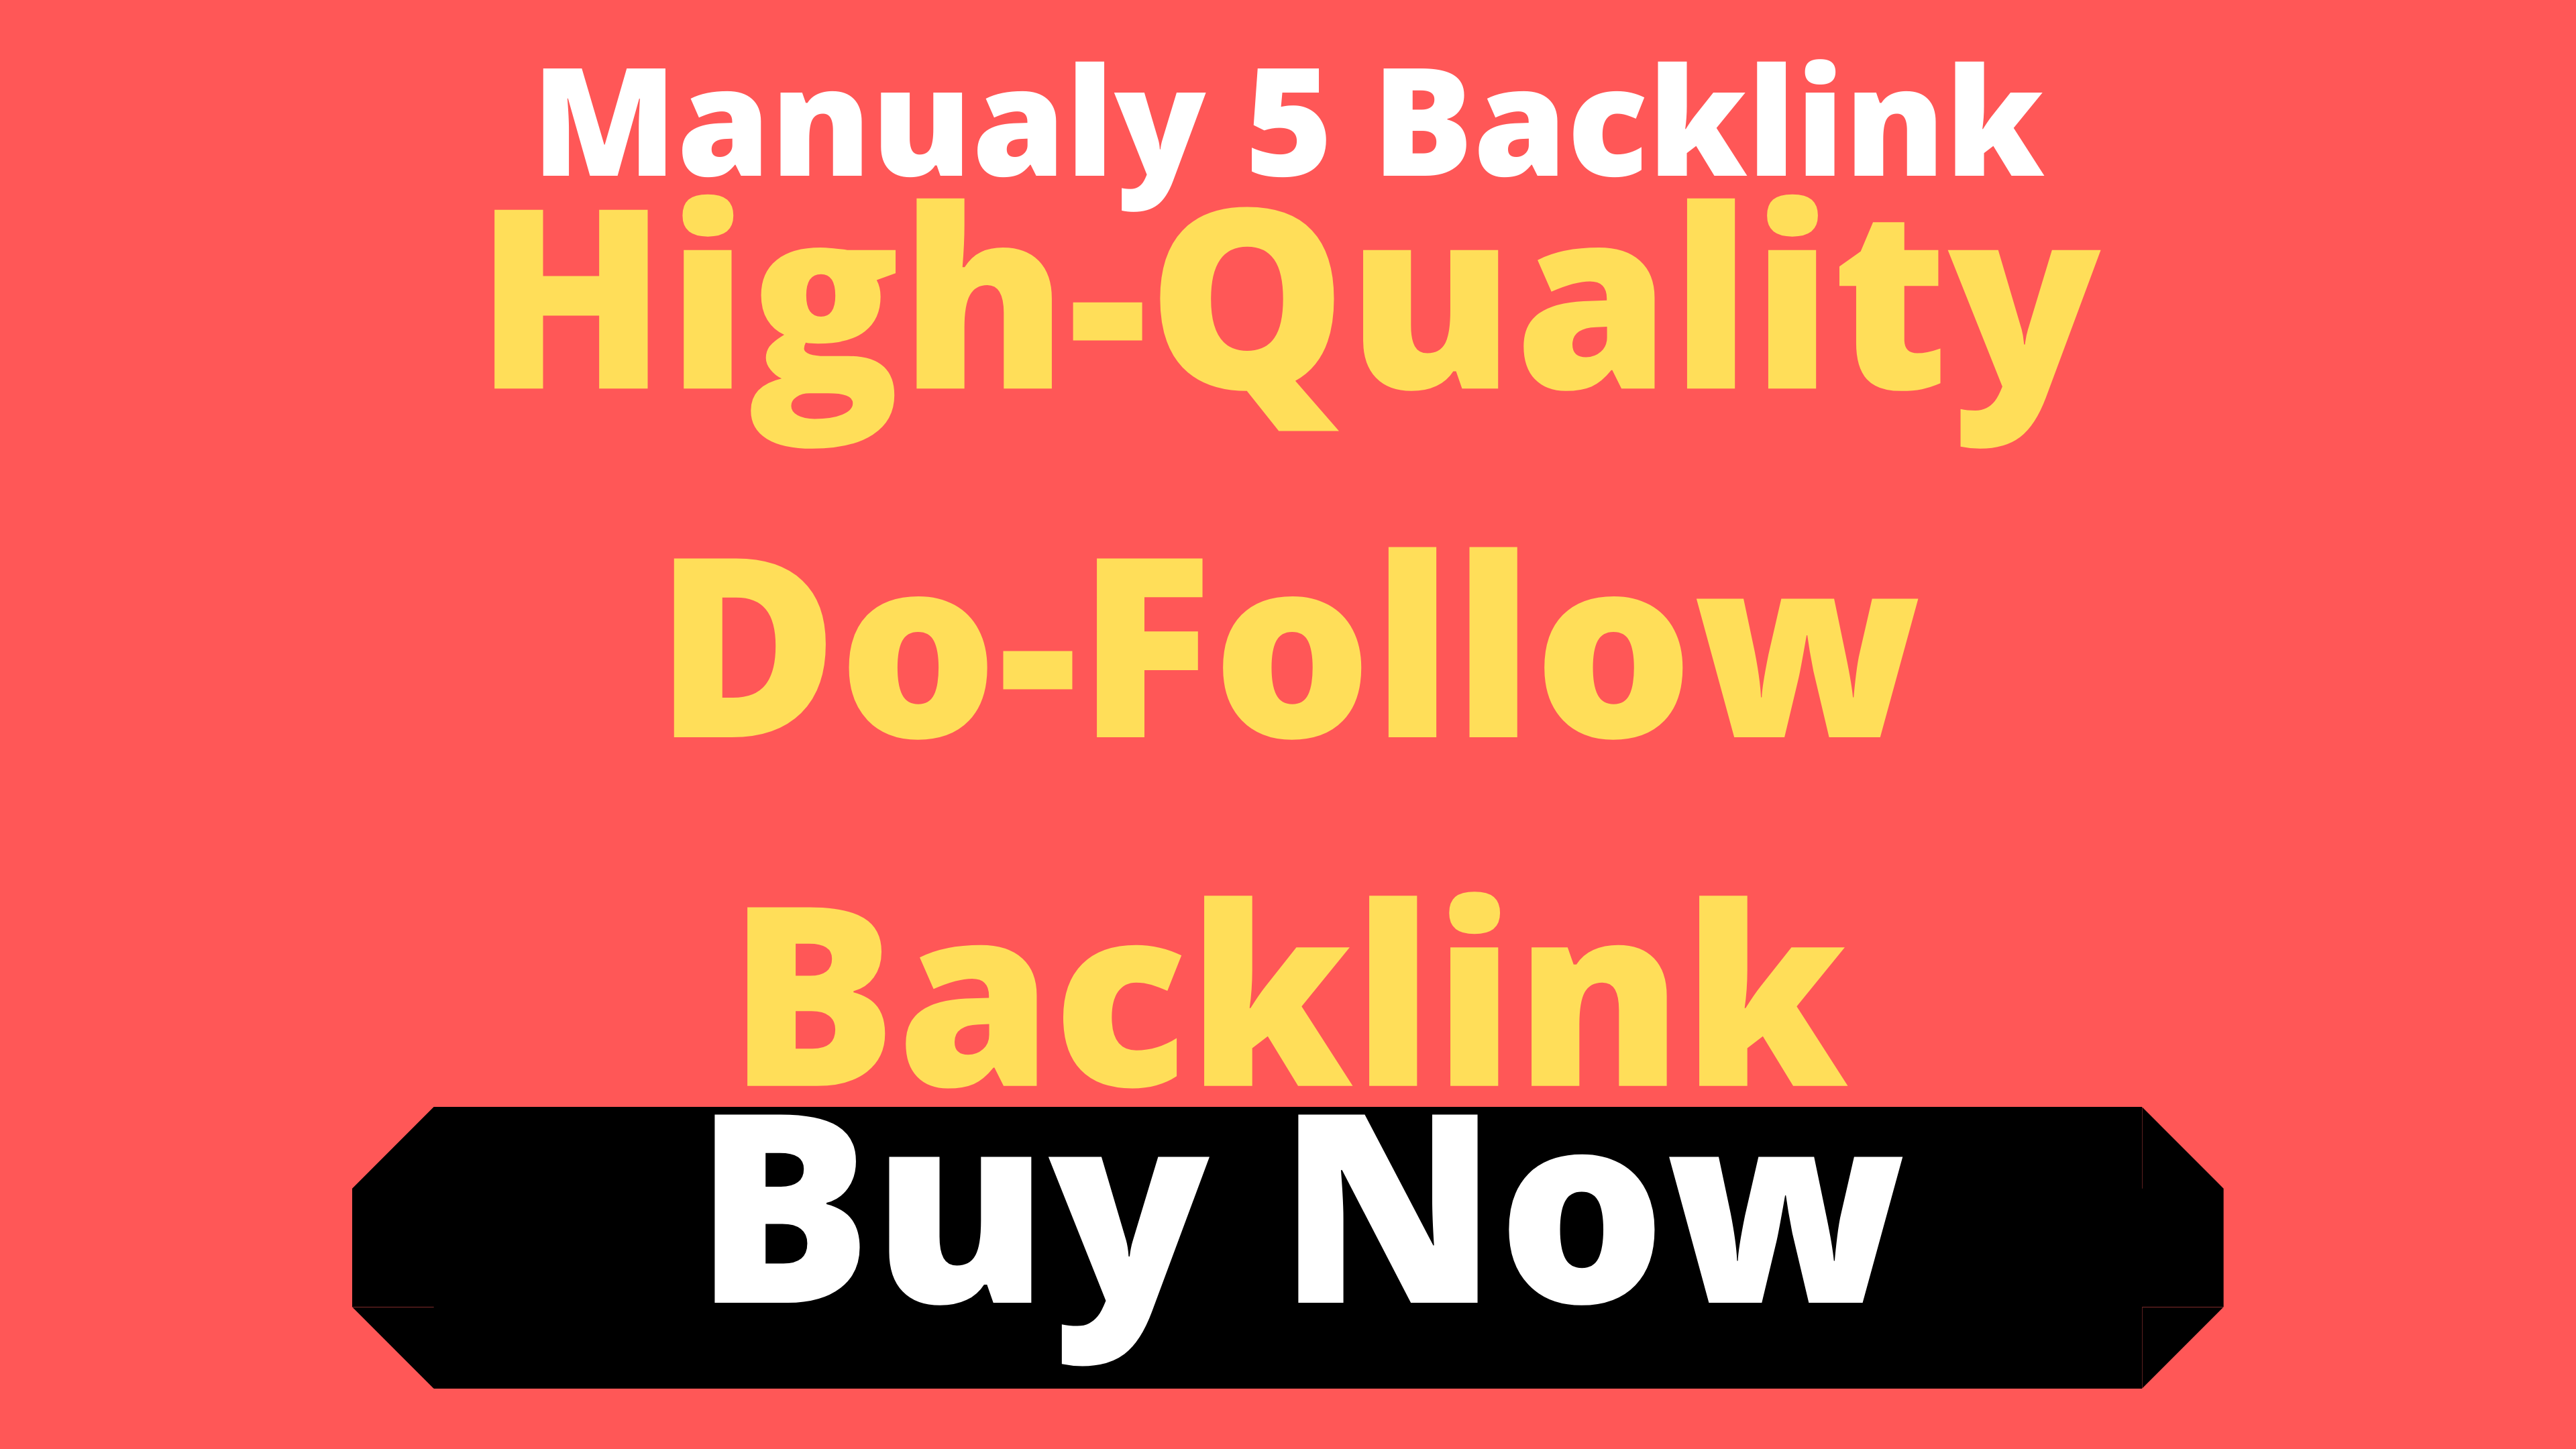 Manual Done 5 High-Quality Profile Do-Follow Backlink White Hat SEO